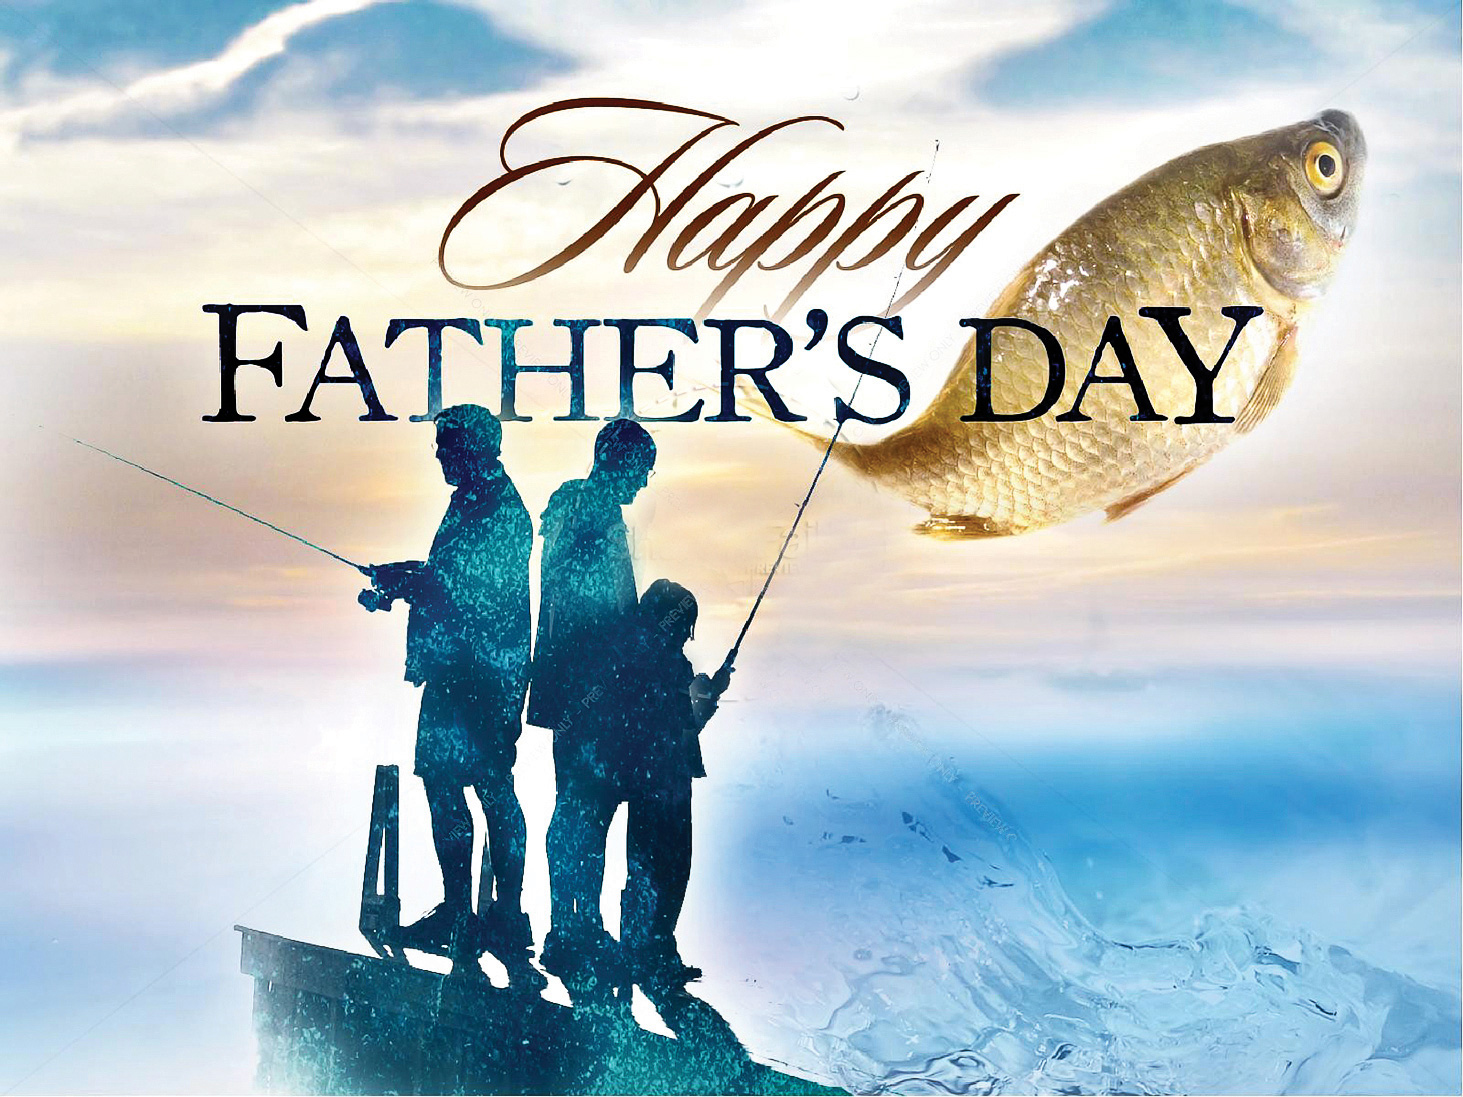 Stay tuned for more info for the Father's Day Fishing Derby on Saturday, June 19!